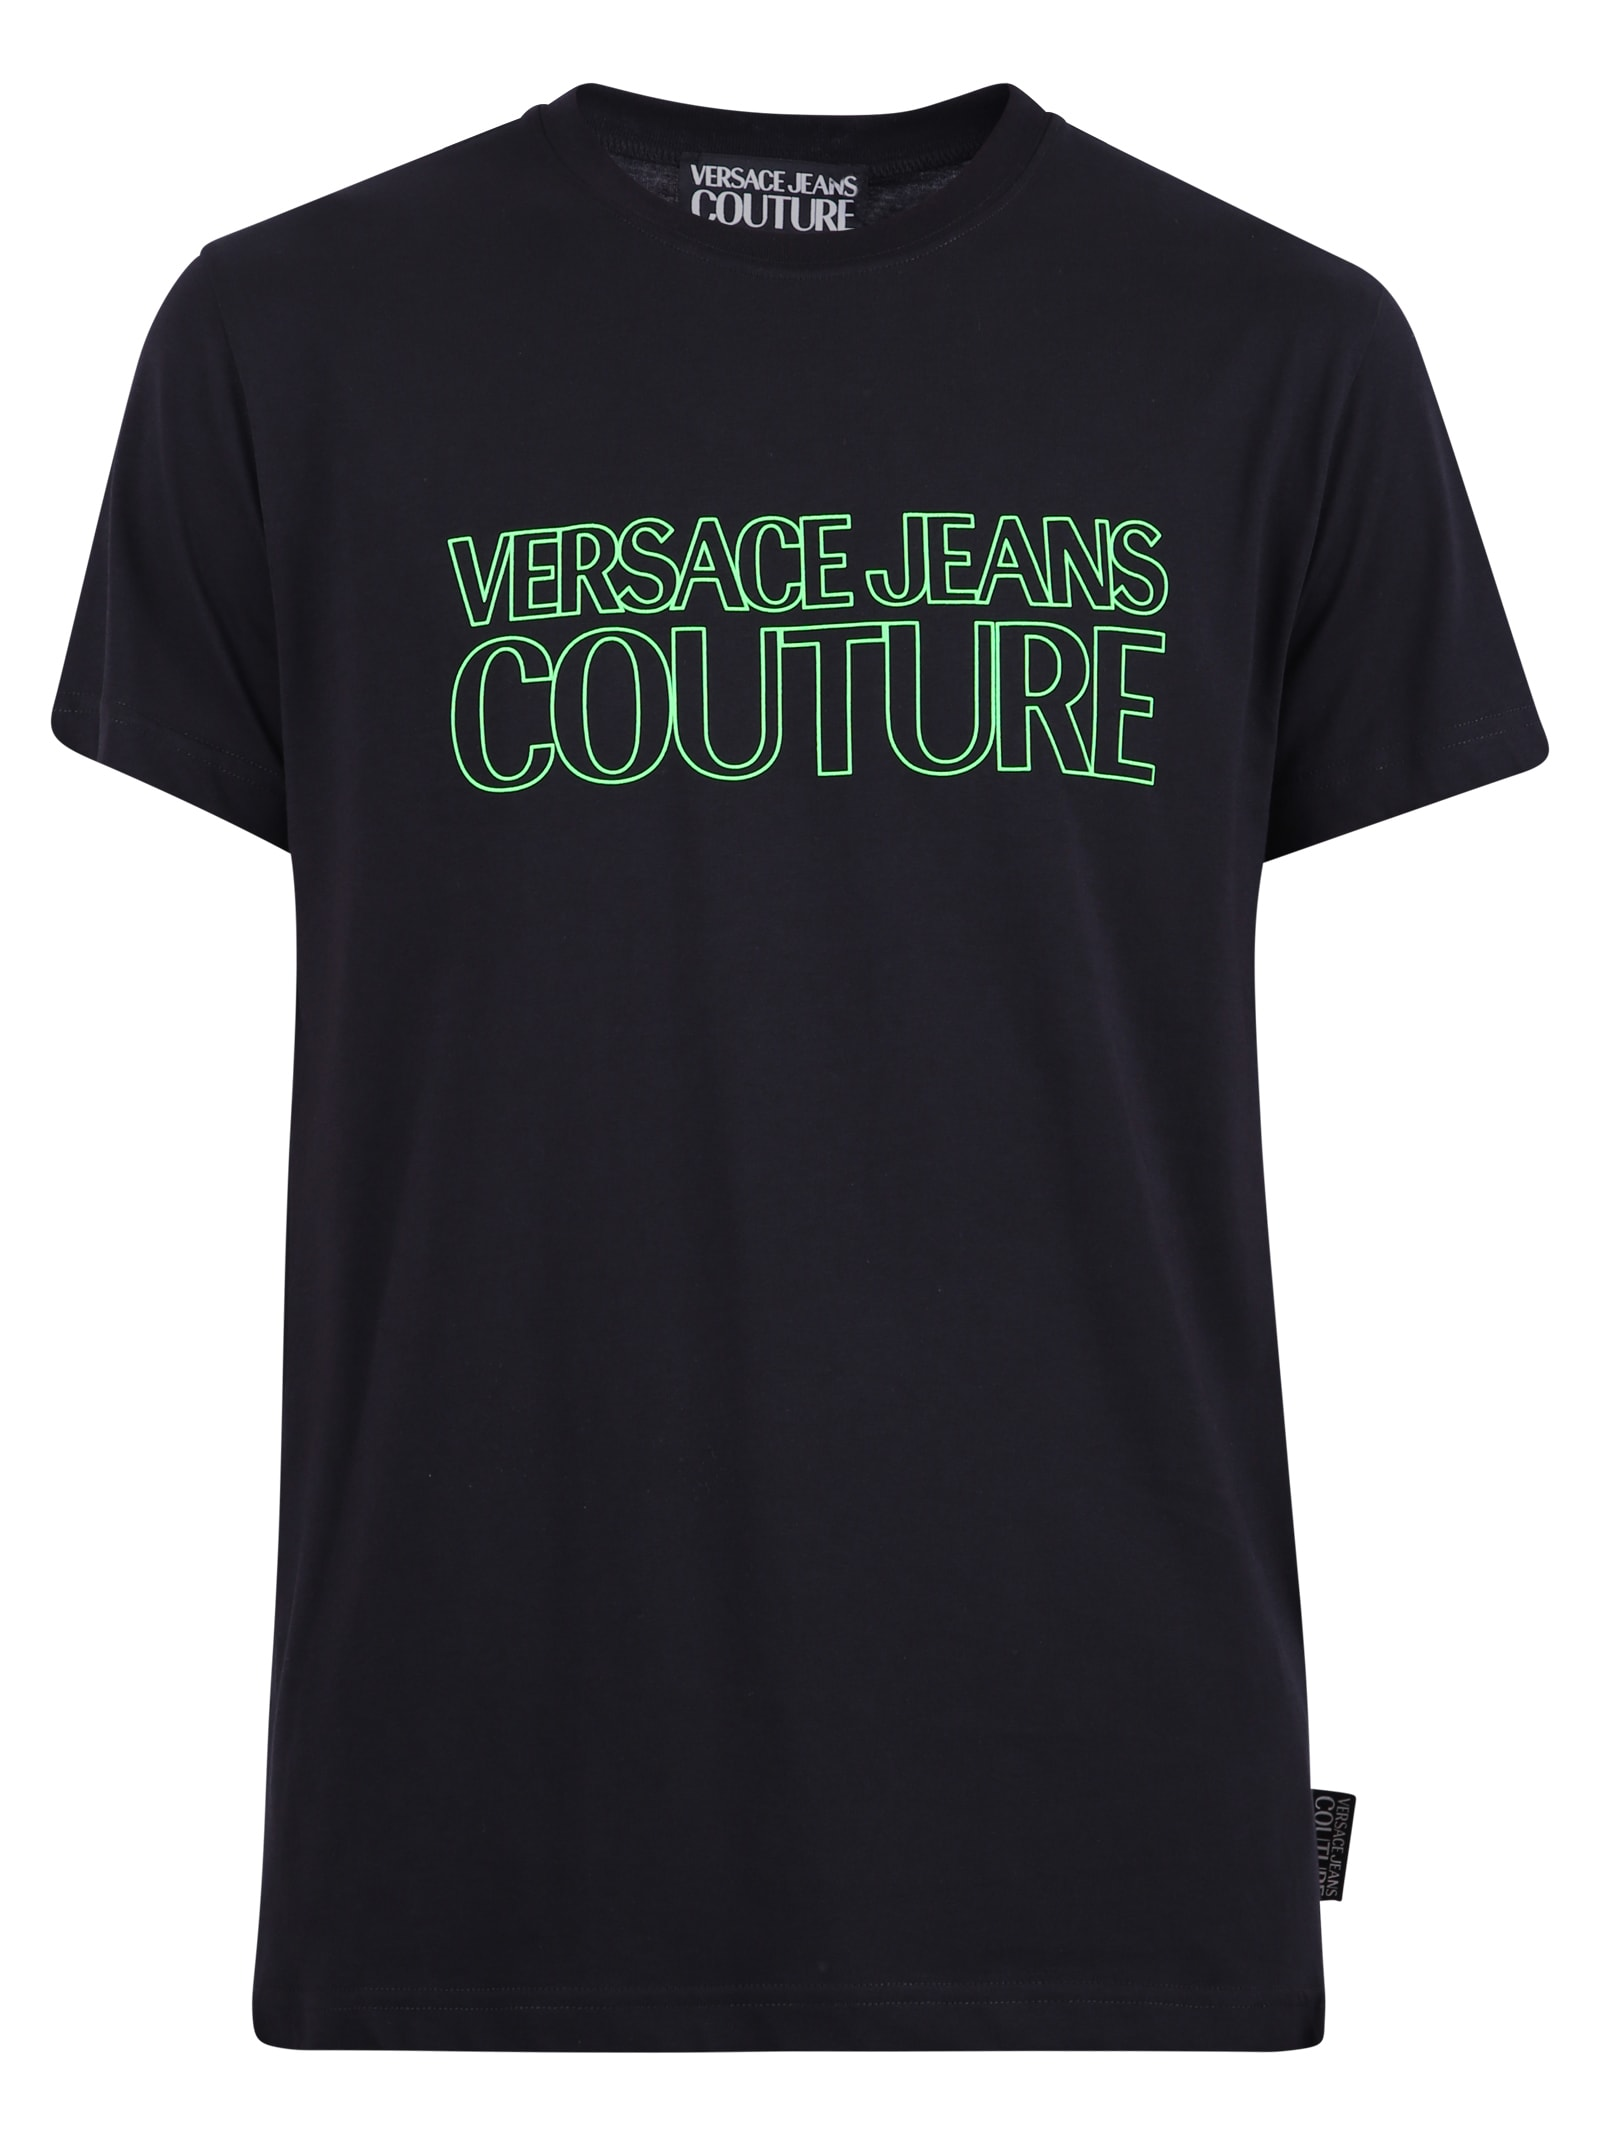 Versace Jeans Couture Branded T-shirt